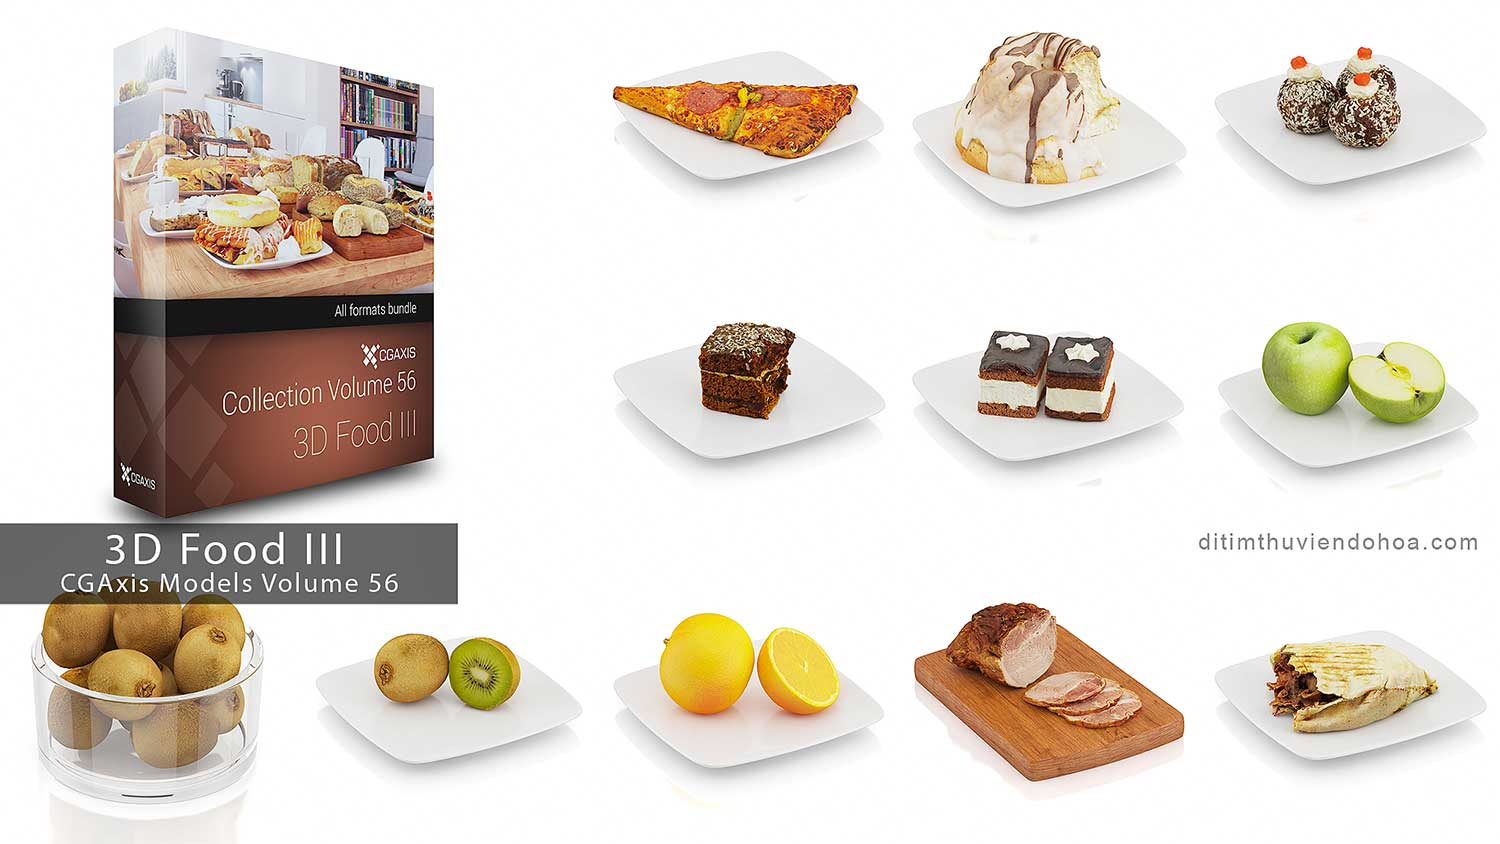 CGAxis Models Volume 56-3D Food III